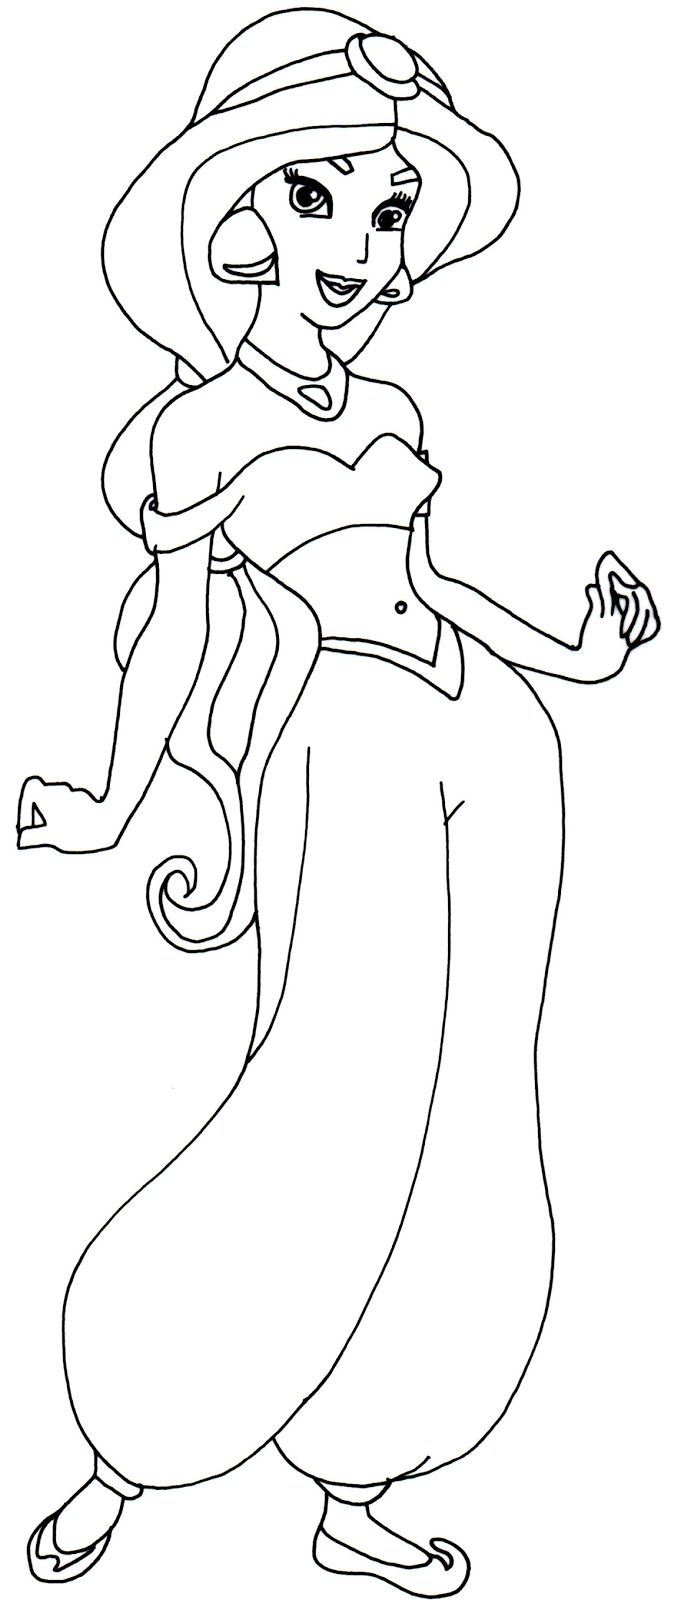 169 Best Disney Aladdin Images On Pinterest Colouring Pages